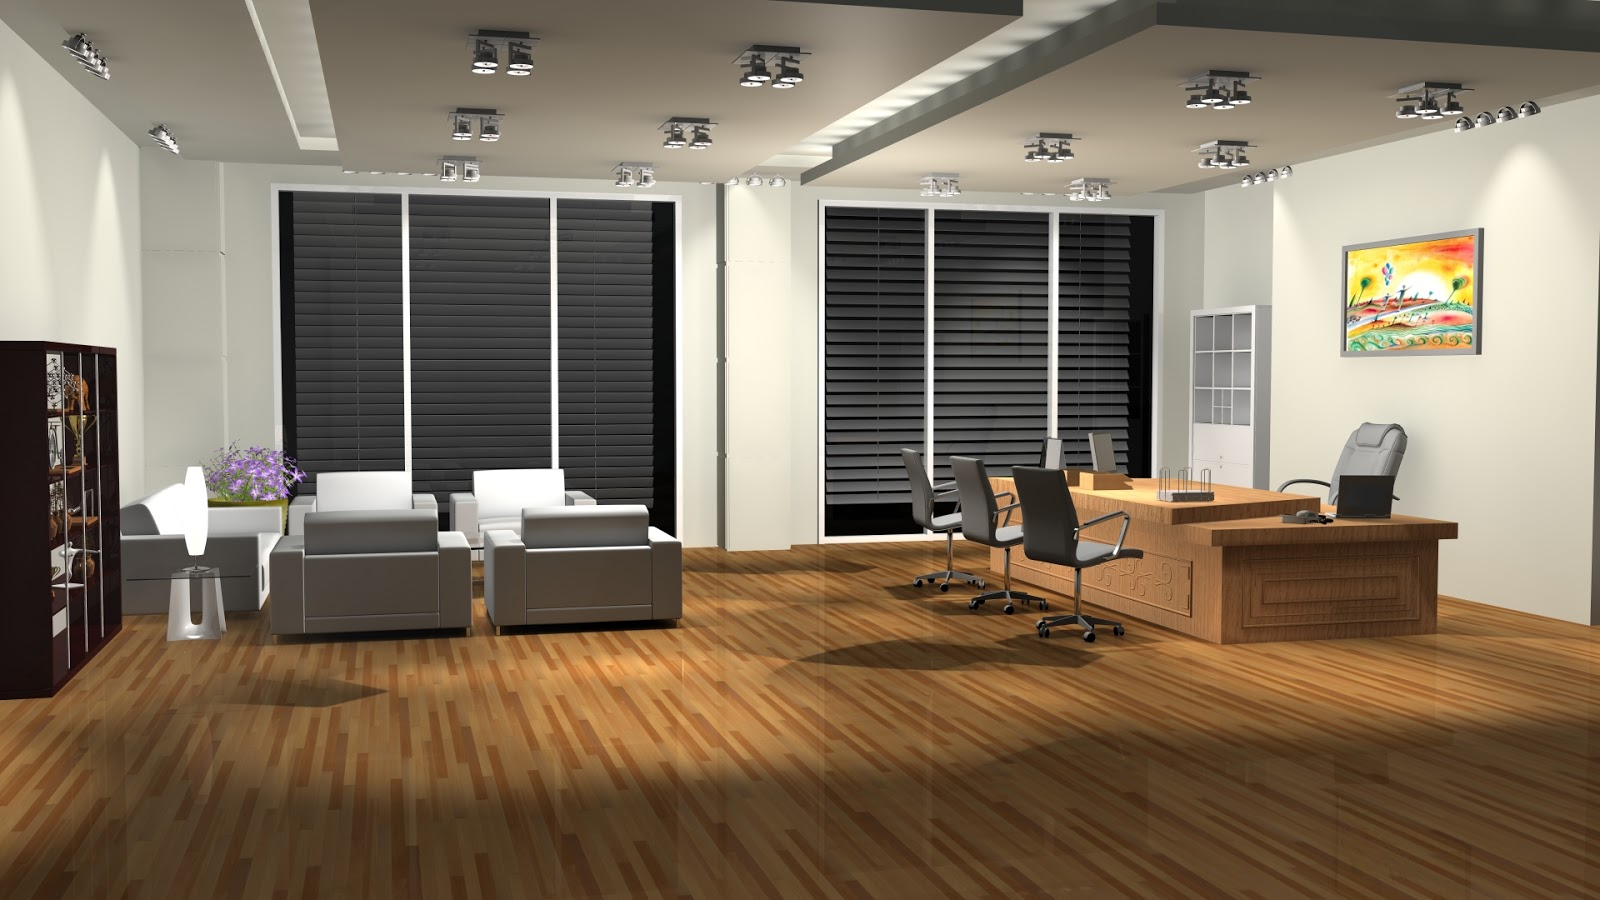 Sajid designs office room 3d interior design 3ds max for Pictures of interior designs